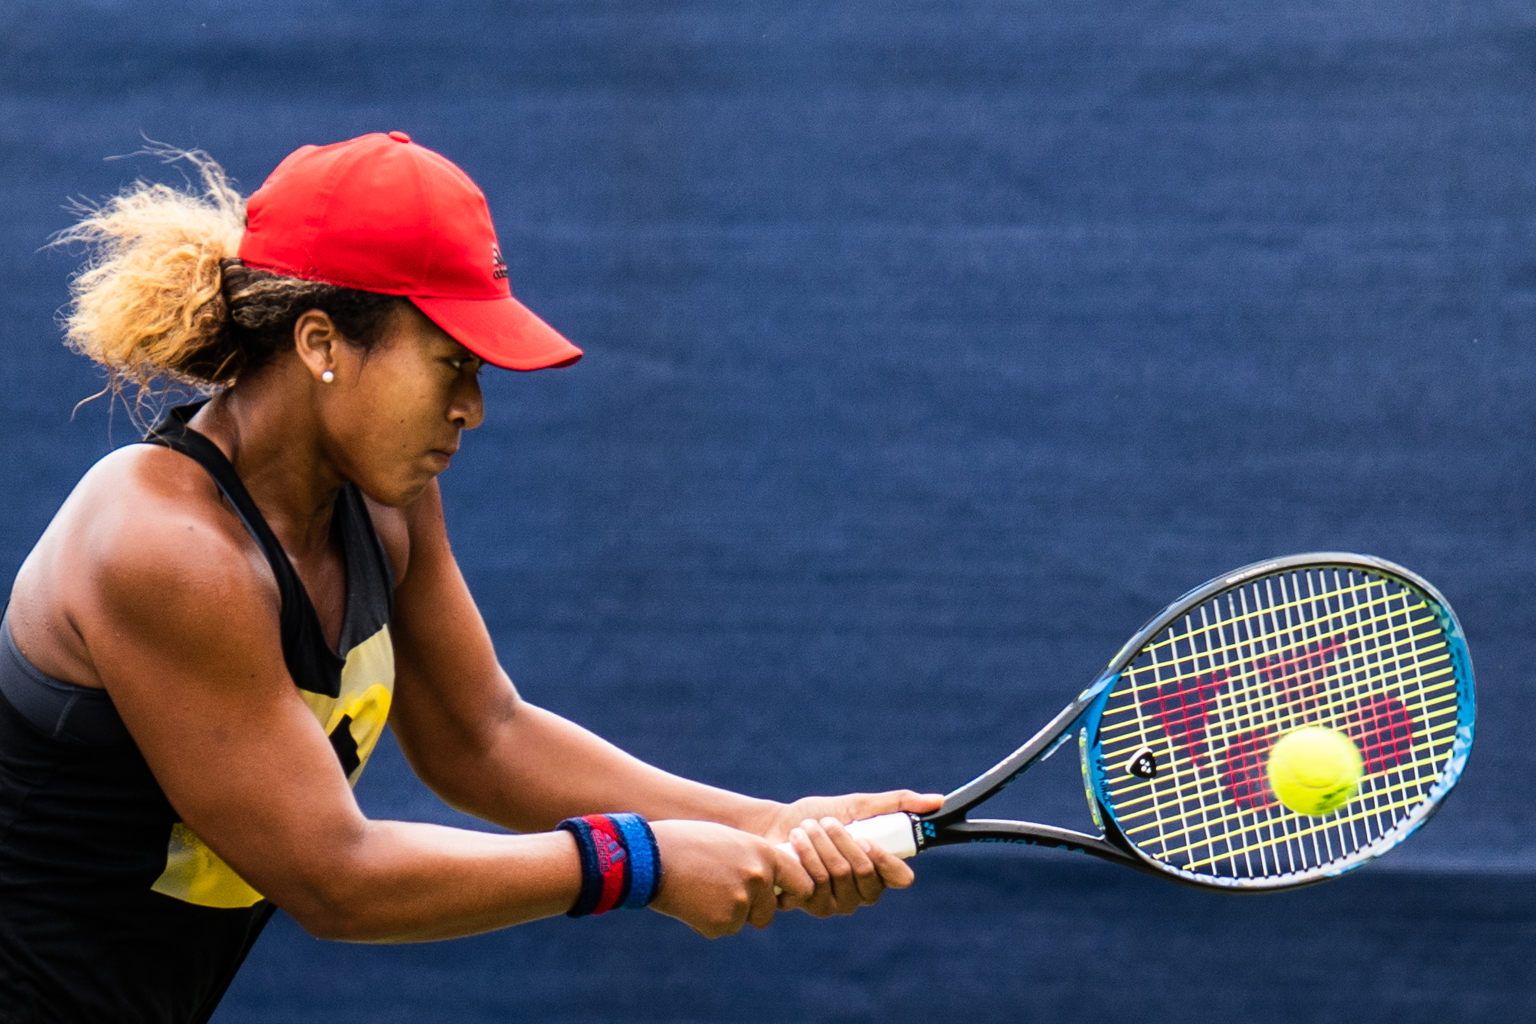 By Peter Menzel - Naomi Osaka, CC BY-SA 2.0, https://commons.wikimedia.org/w/index.php?curid=74087470